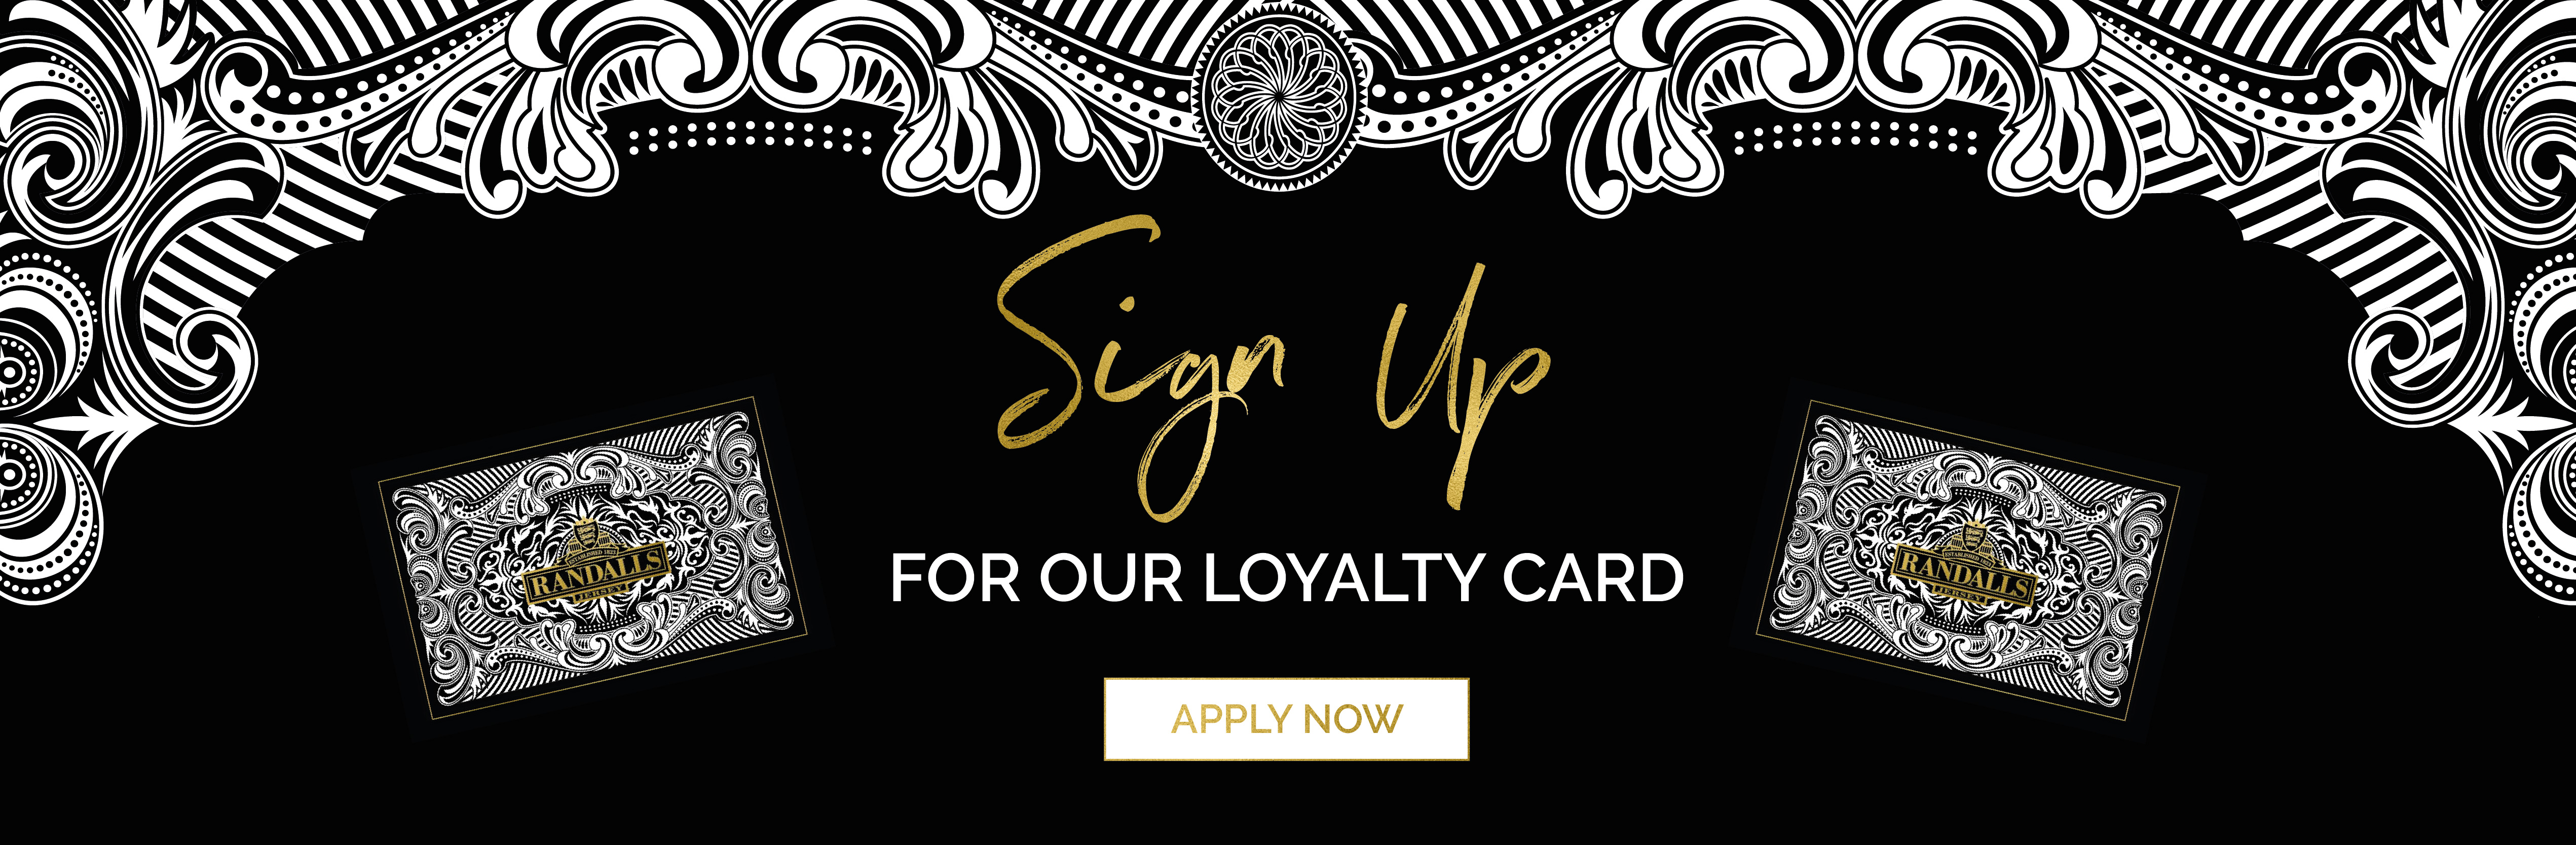 Randalls Loyalty Card - Sign Up Now